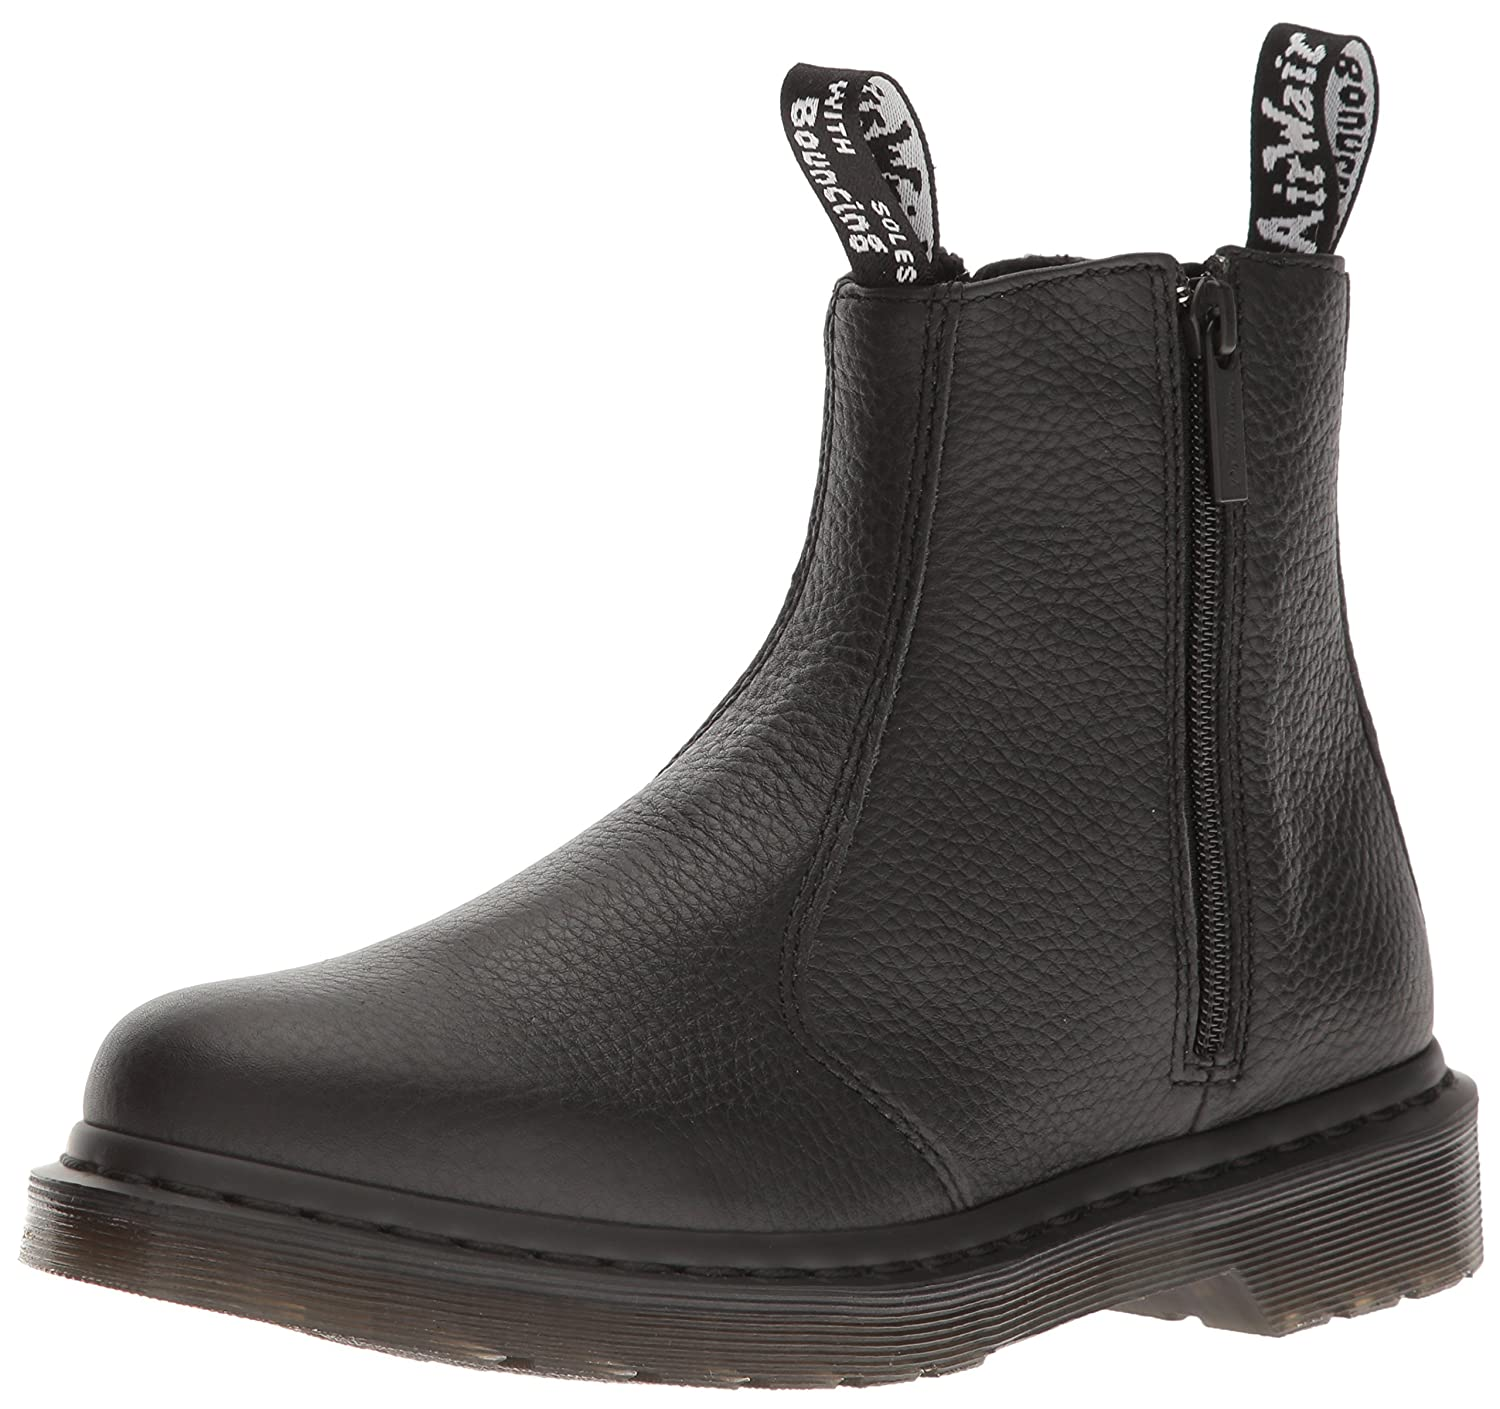 ca593b715be Dr. Martens Women s 2976 W Zips Chelsea Boots  Amazon.co.uk  Shoes   Bags